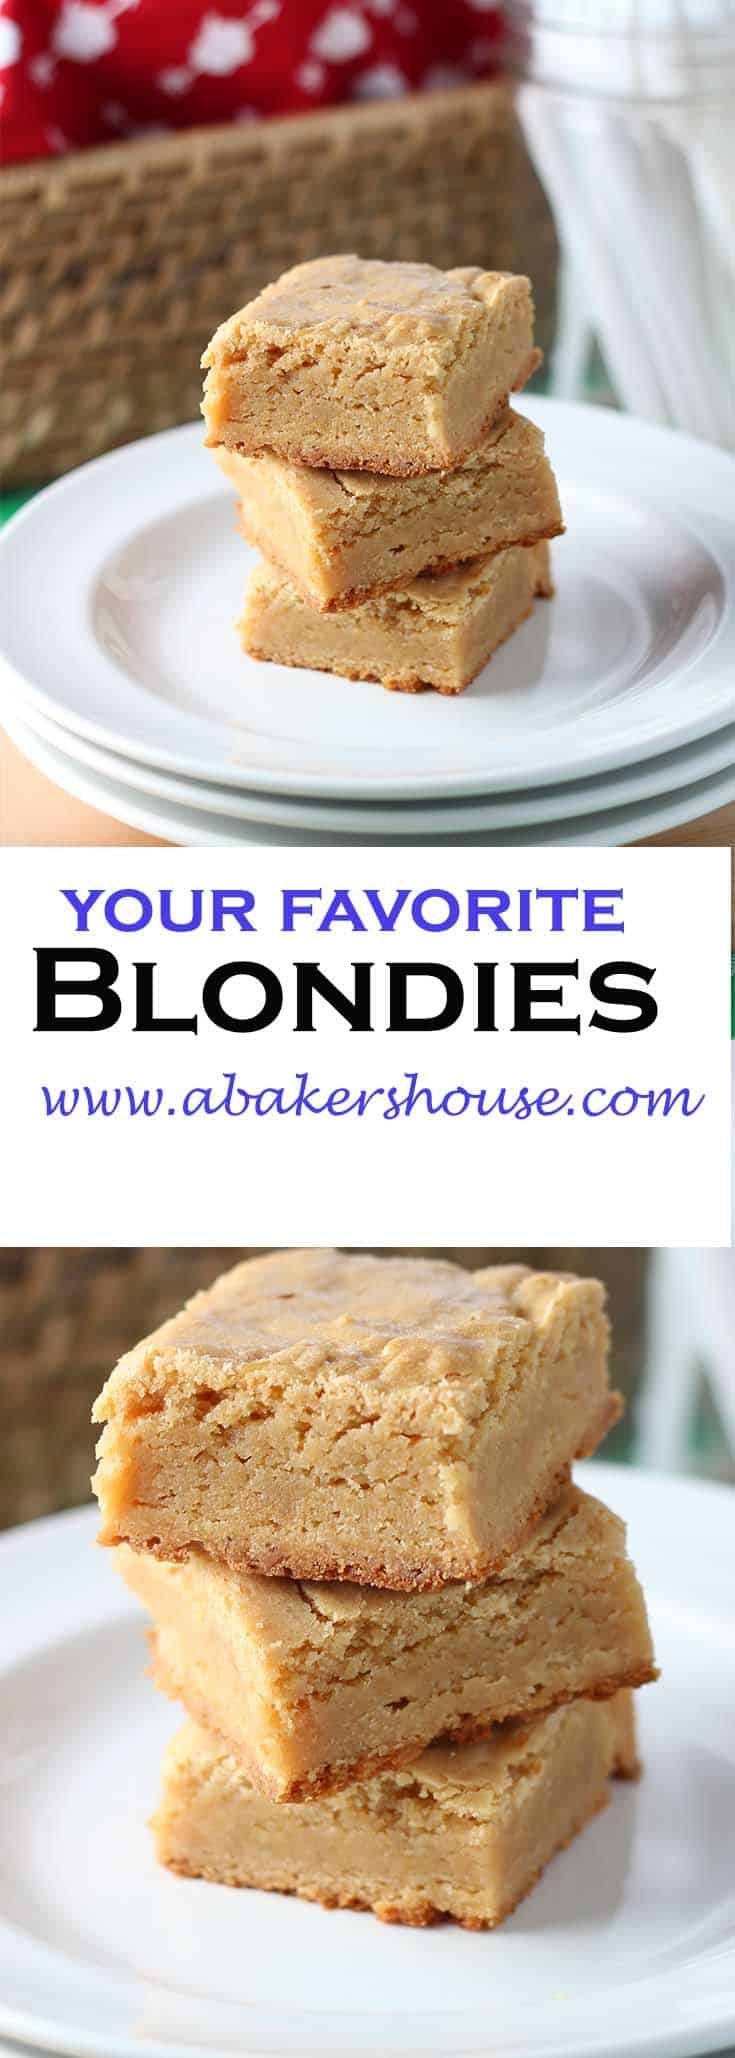 Blondies may be the better half to a brownie-- the same square, portable treat but without the heaviness of chocolate. The combination of granulated and brown sugar creates a chewy bite that makes it tempting to eat more than your share of each batch of blondies. #abakershouse #blondies